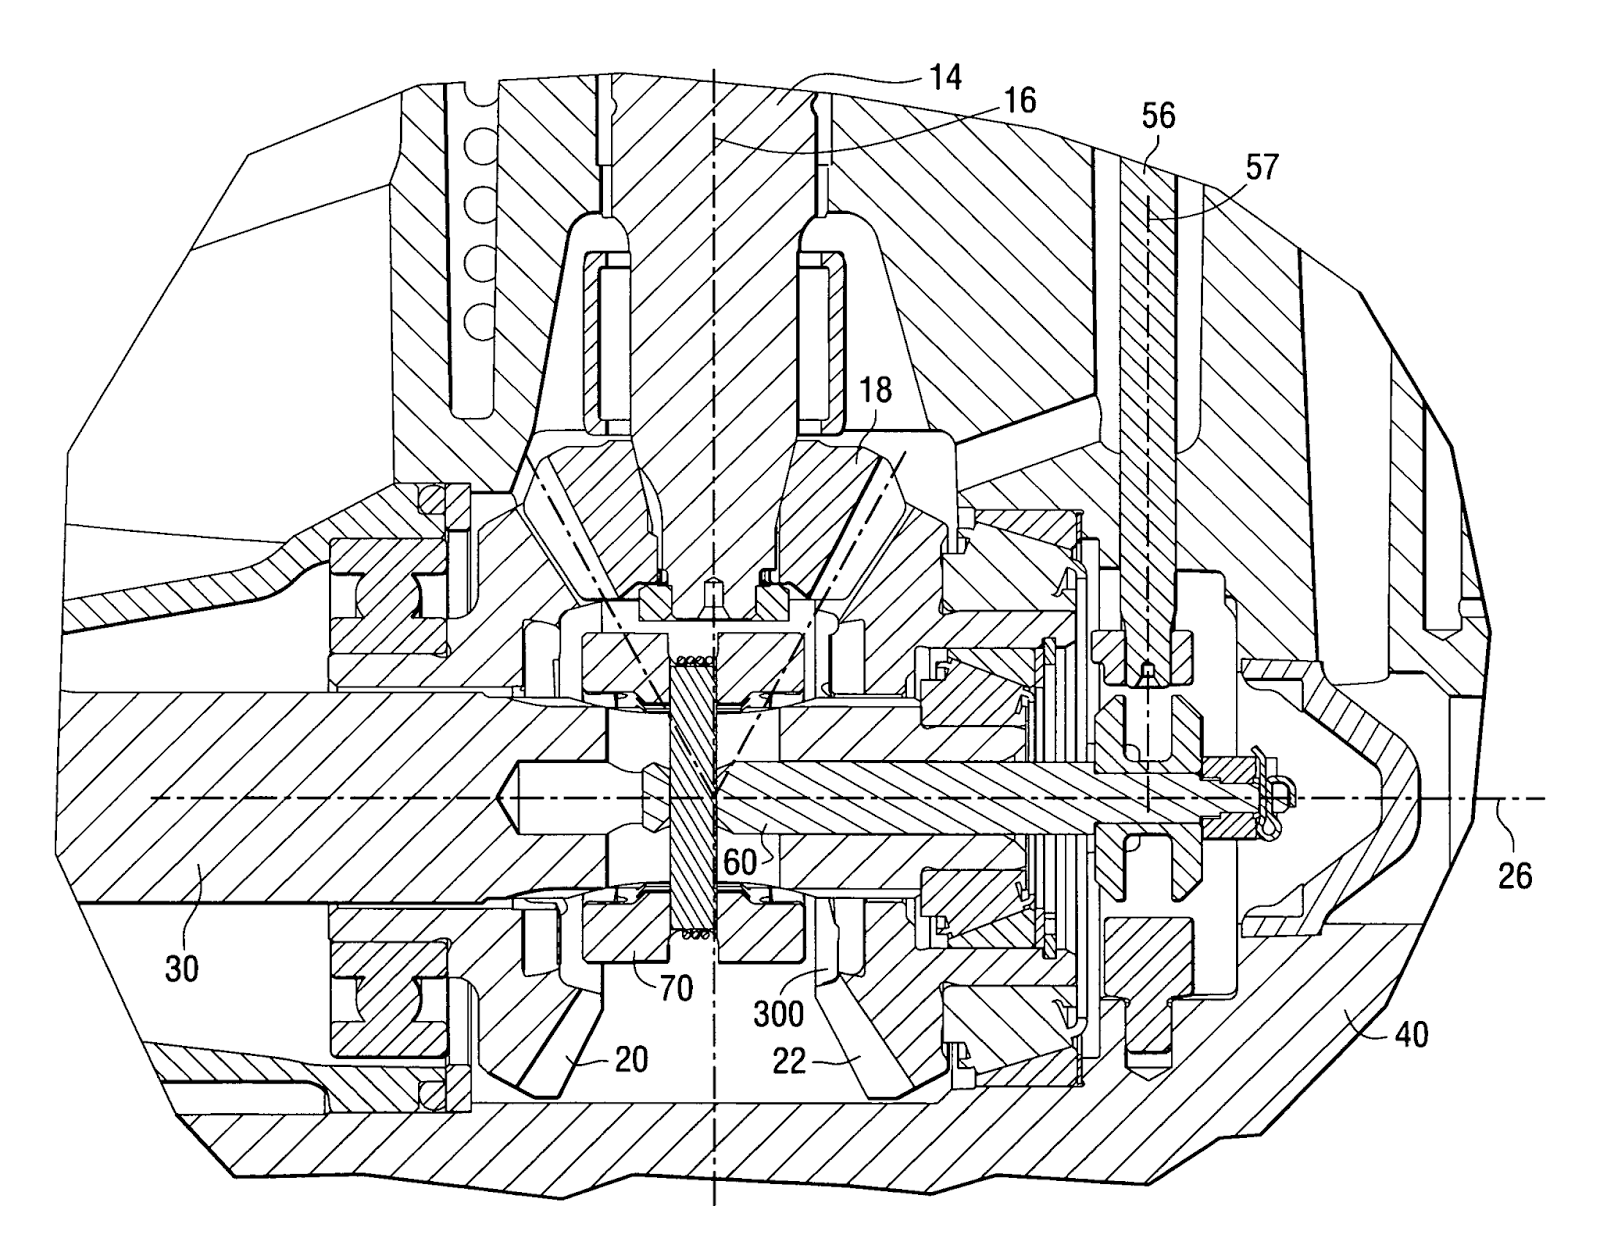 Clutch retention system for a marine propulsion device